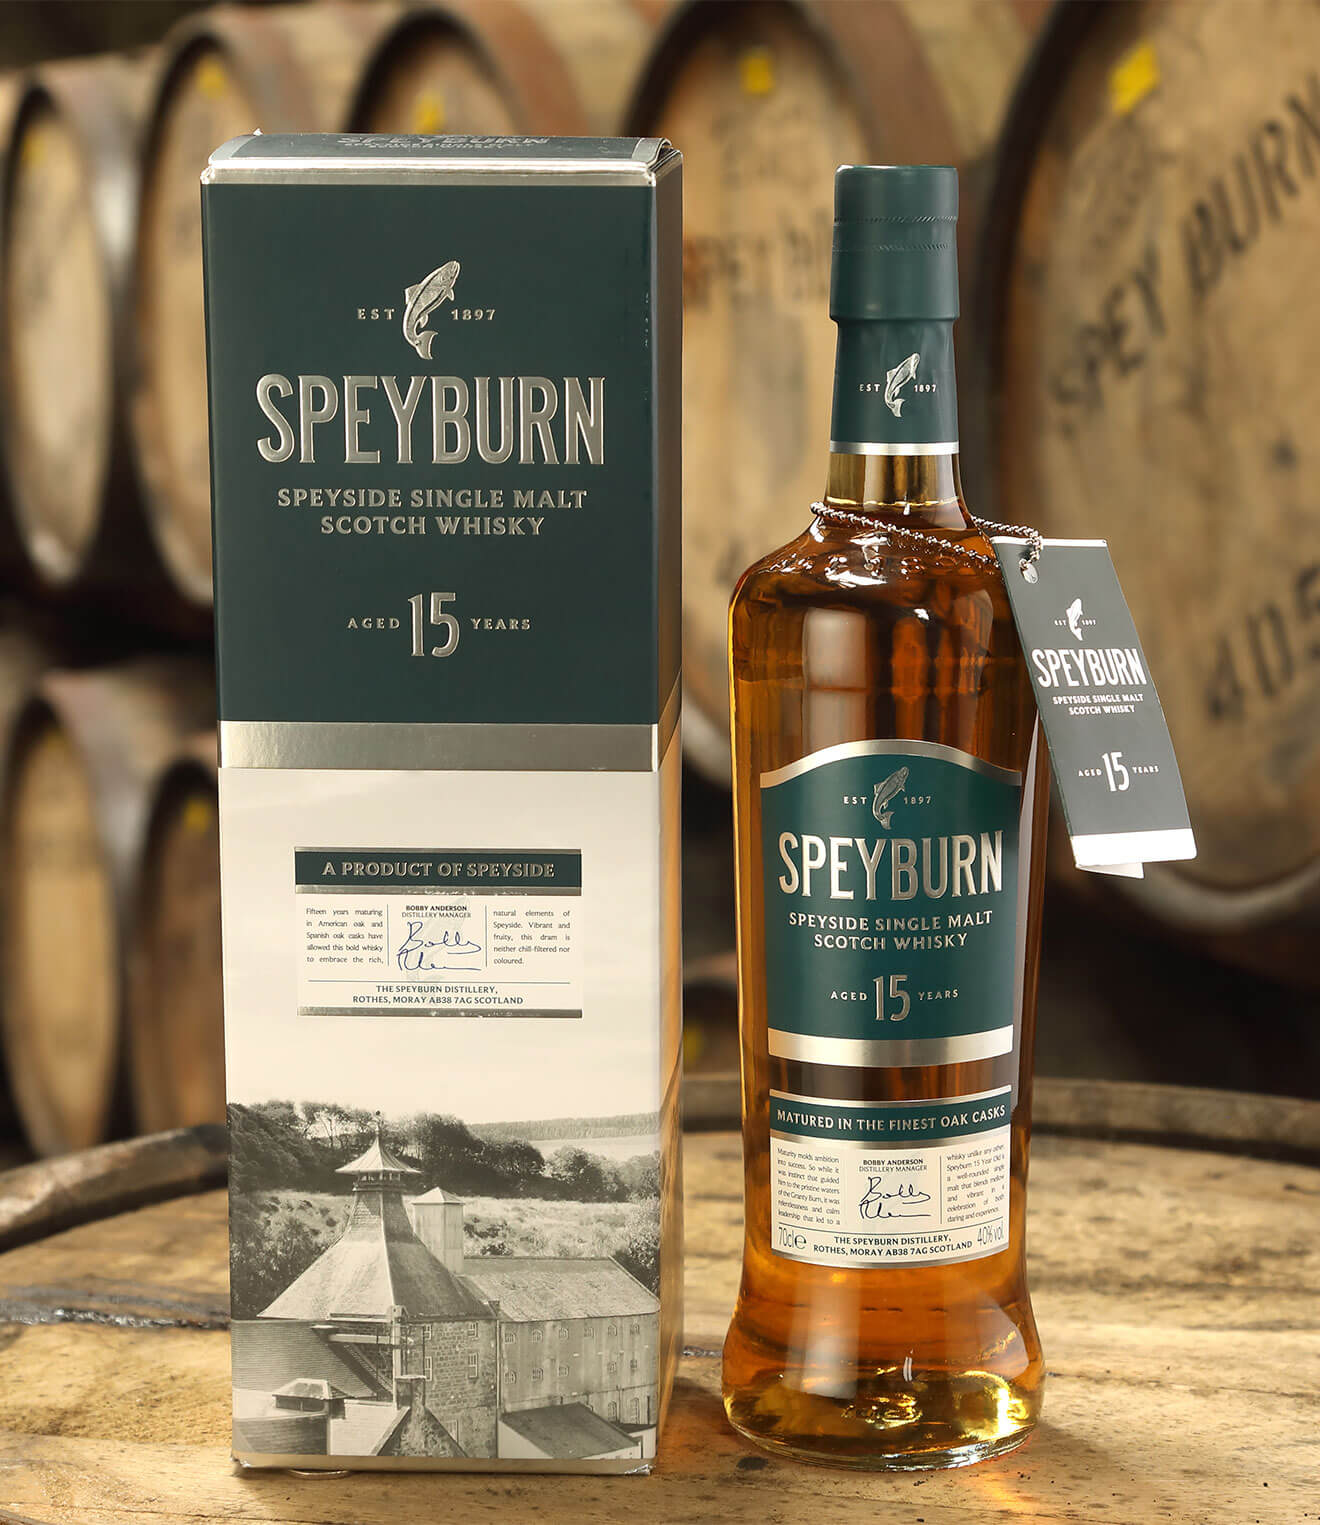 Speyburn Single Malt Scotch Whisky 15 Years Old, bottle, package and barrels